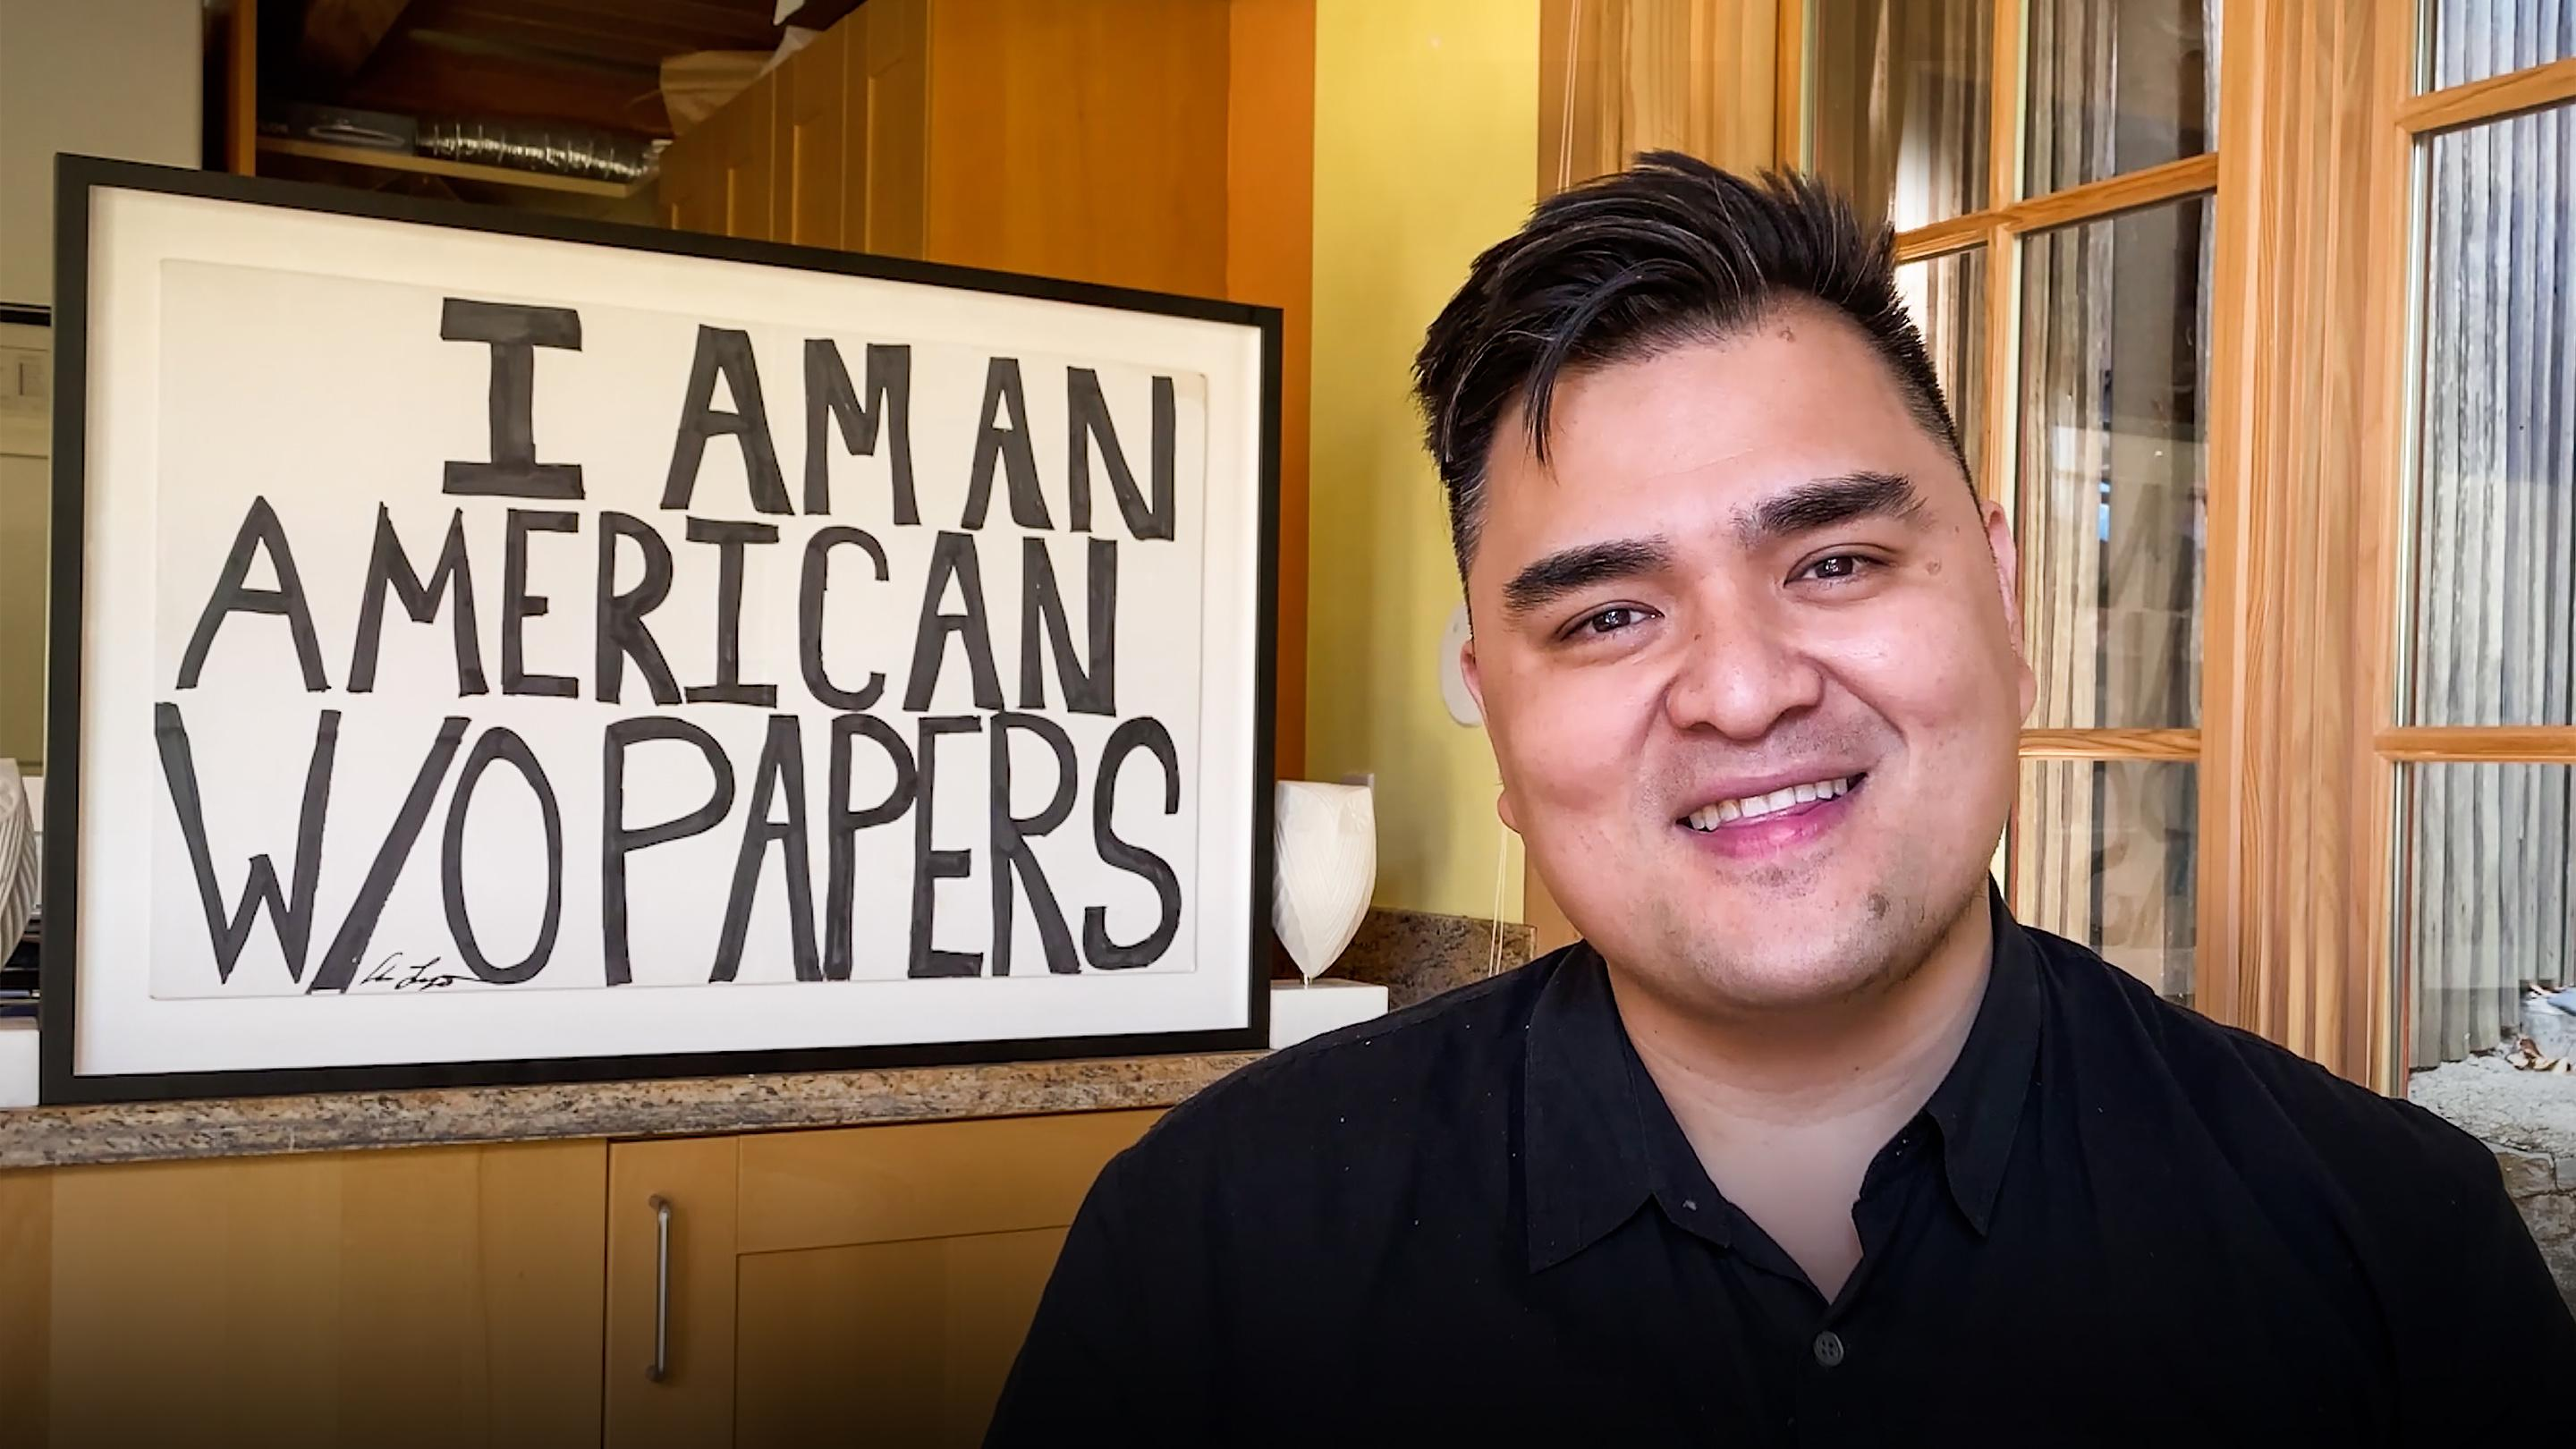 3 questions to ask yourself about US citizenship | Jose Antonio Vargas